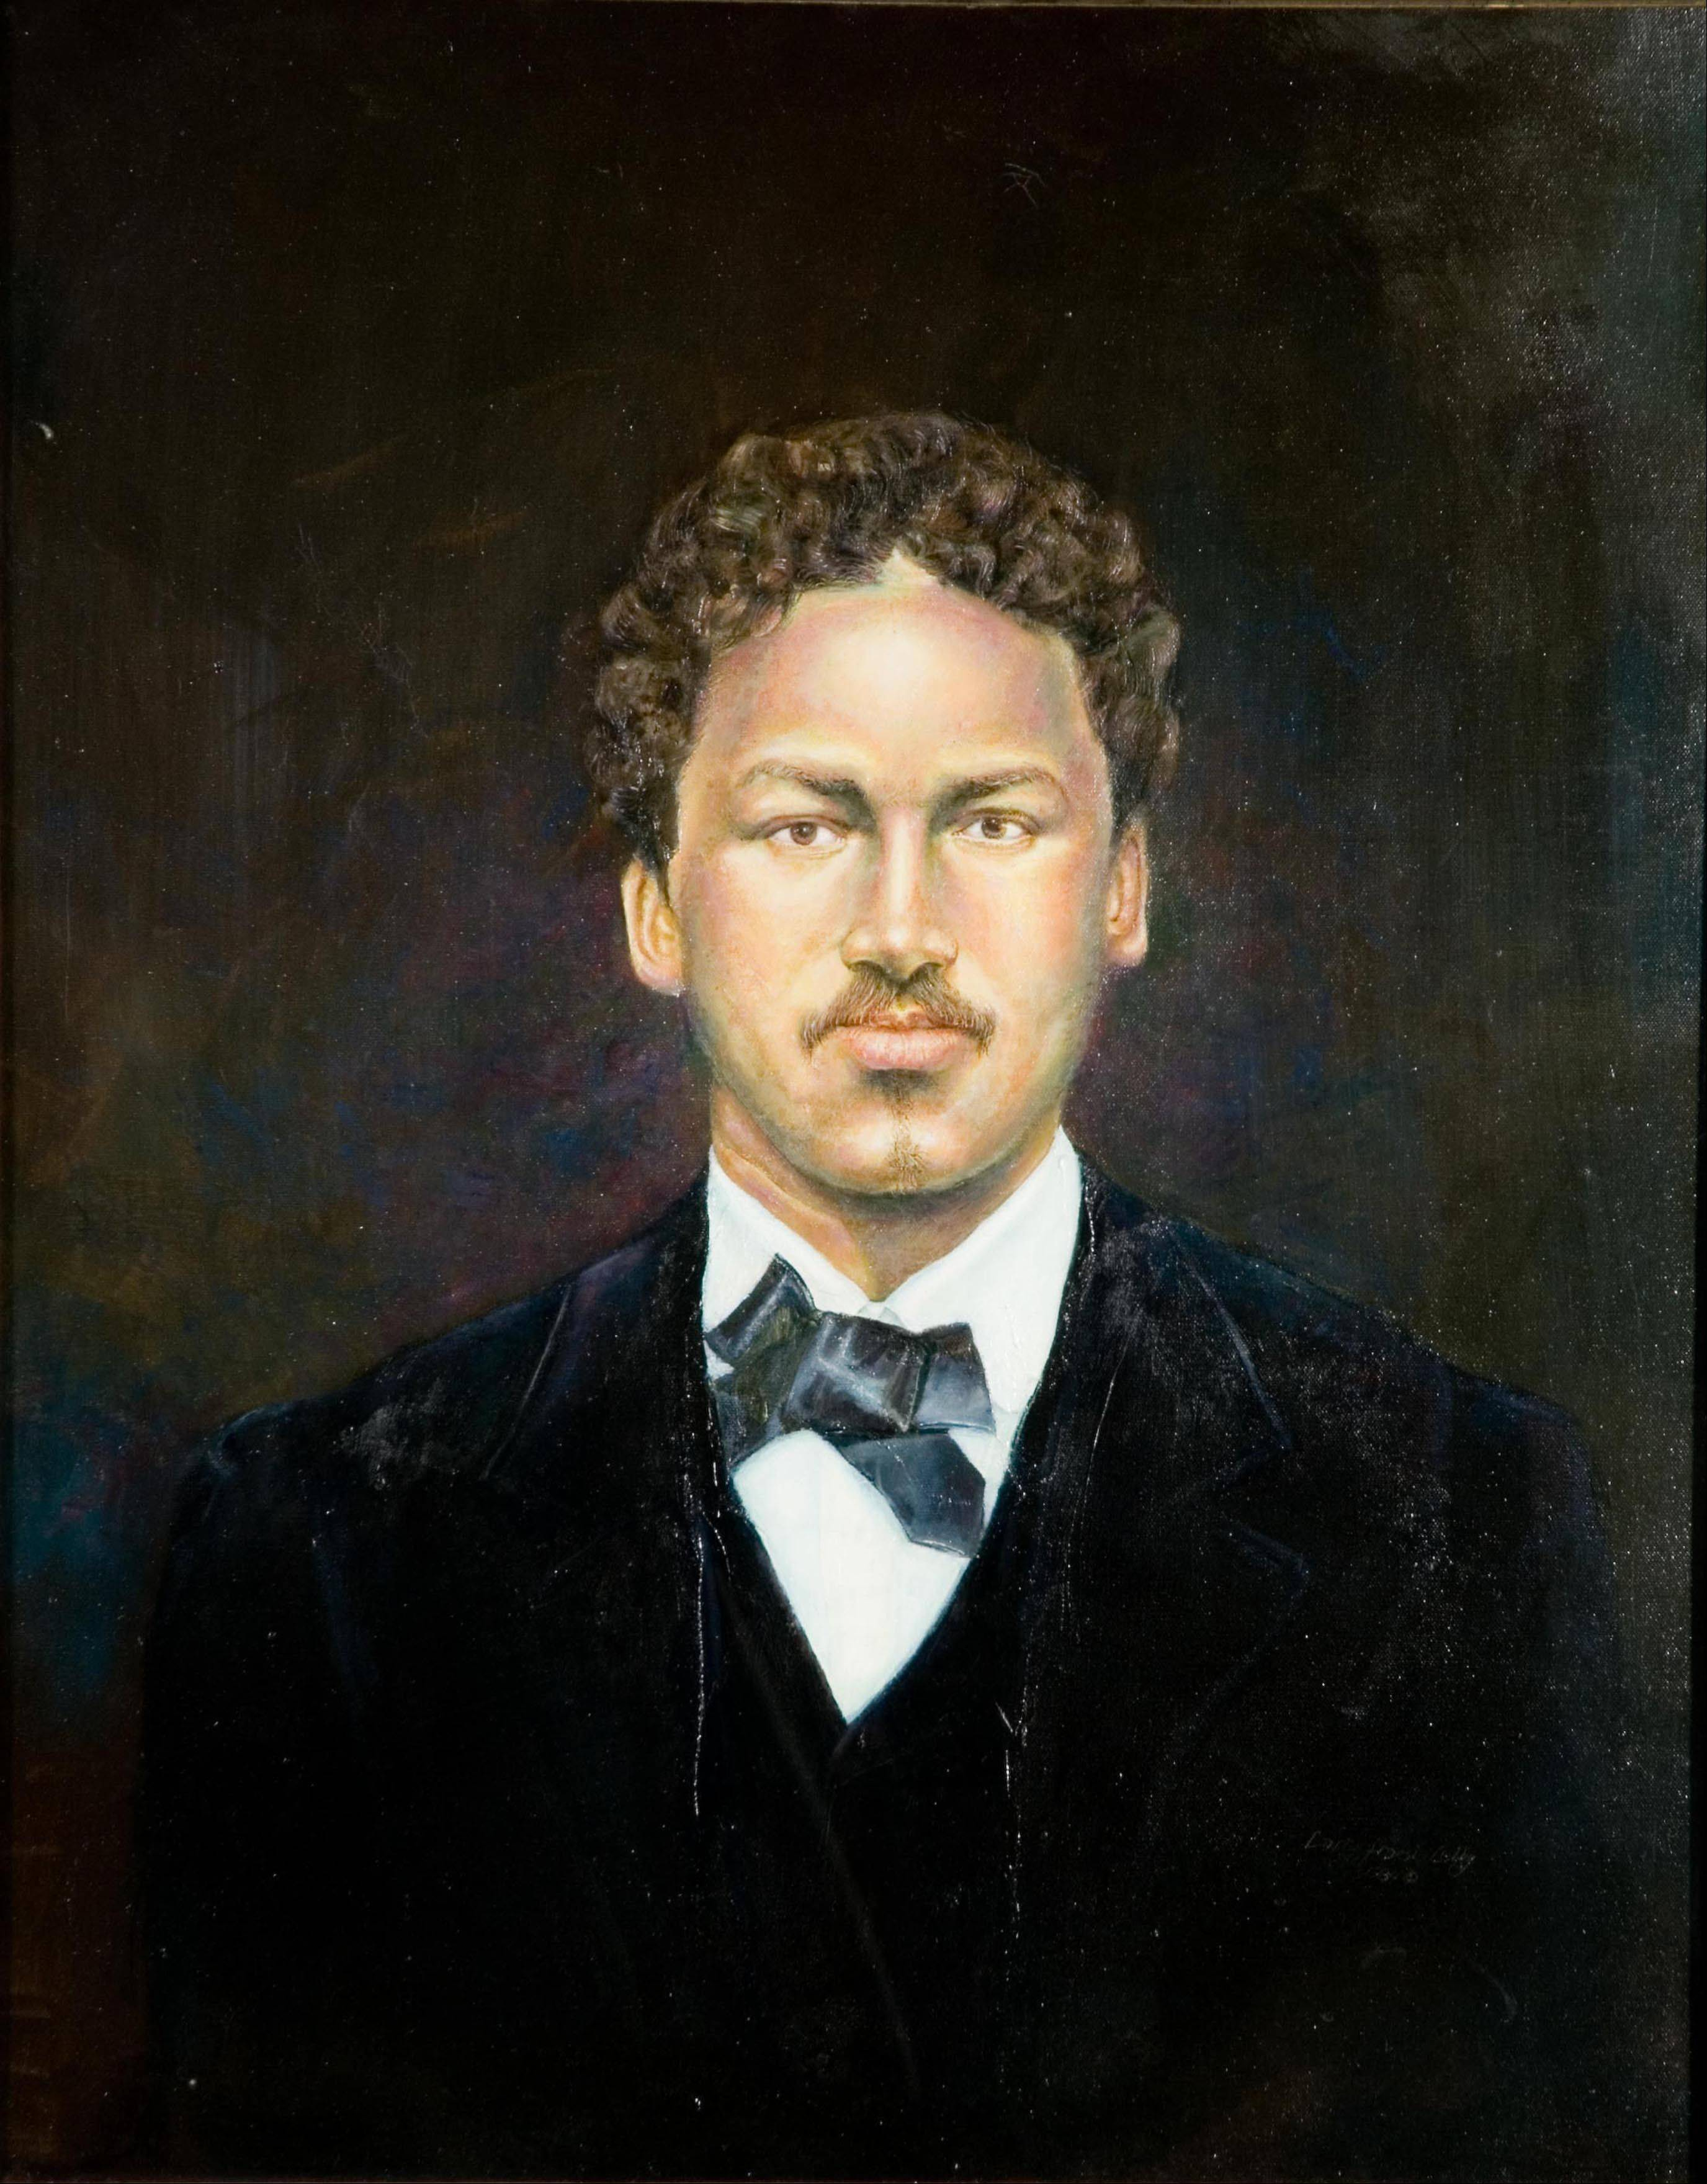 A portrait of Richard Greener painted by Larry Lebby in 1984.